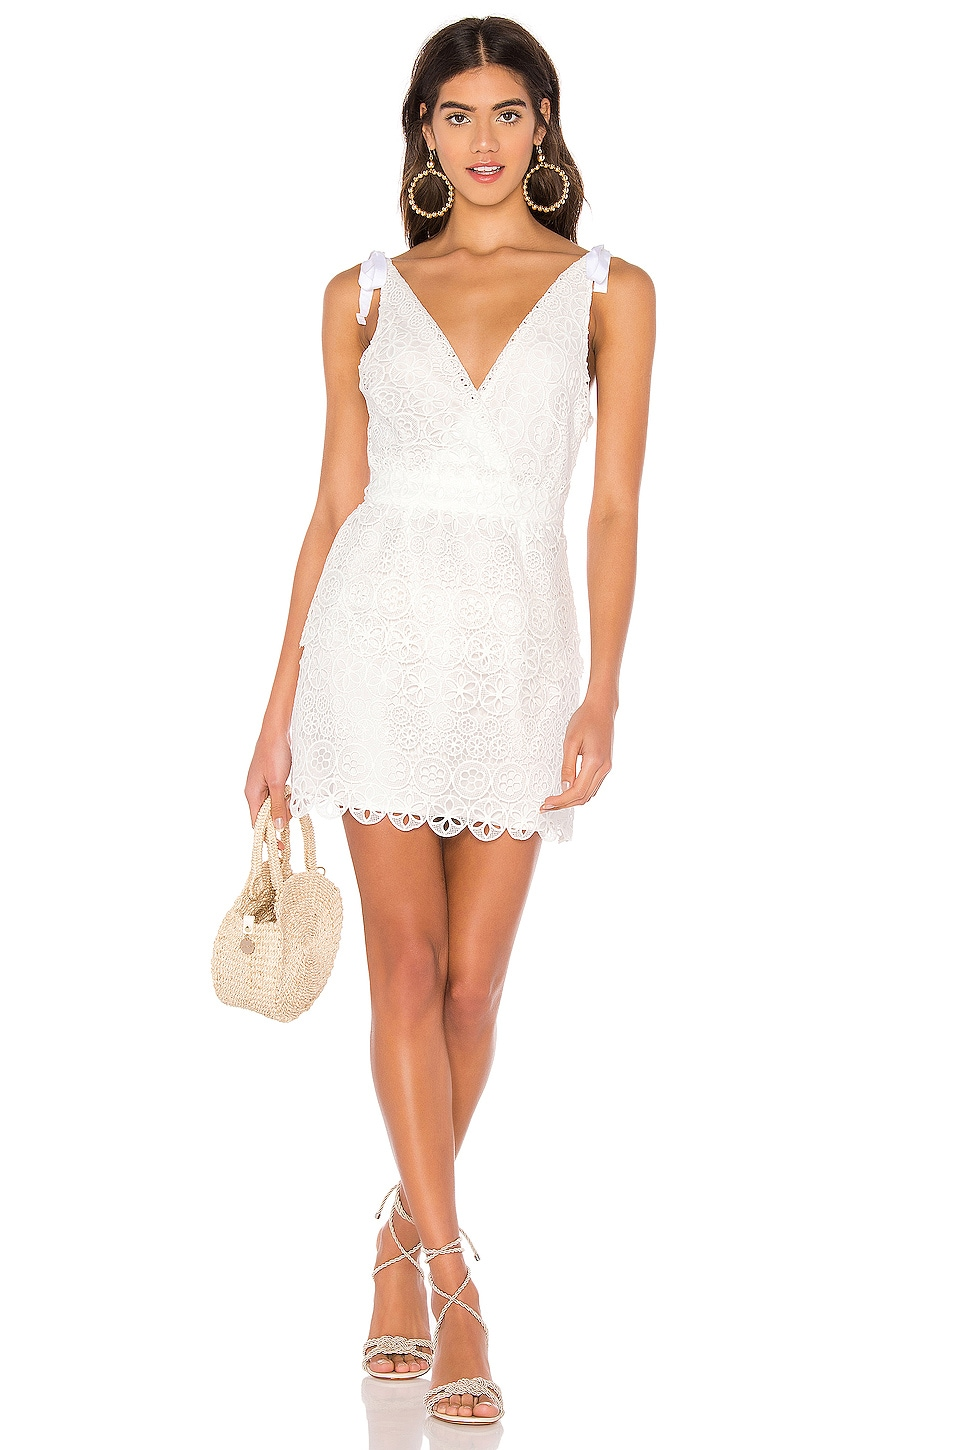 MAJORELLE Juliette Dress in White